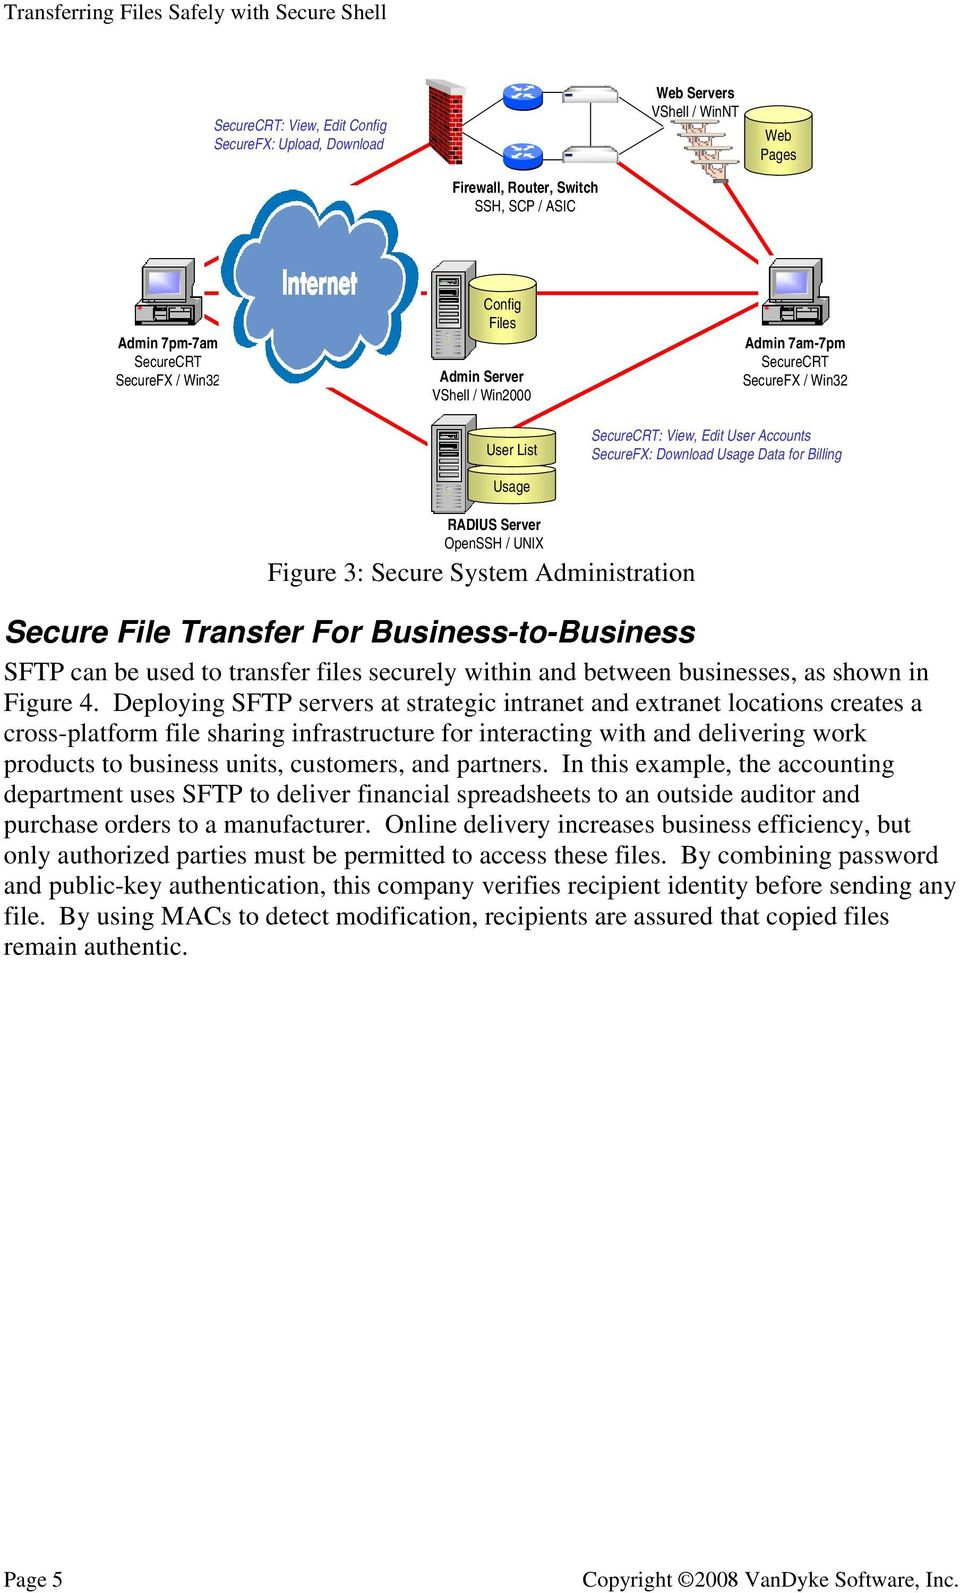 Business-to-Business SFTP can be used to transfer files securely within and between businesses, as shown in Figure 4.